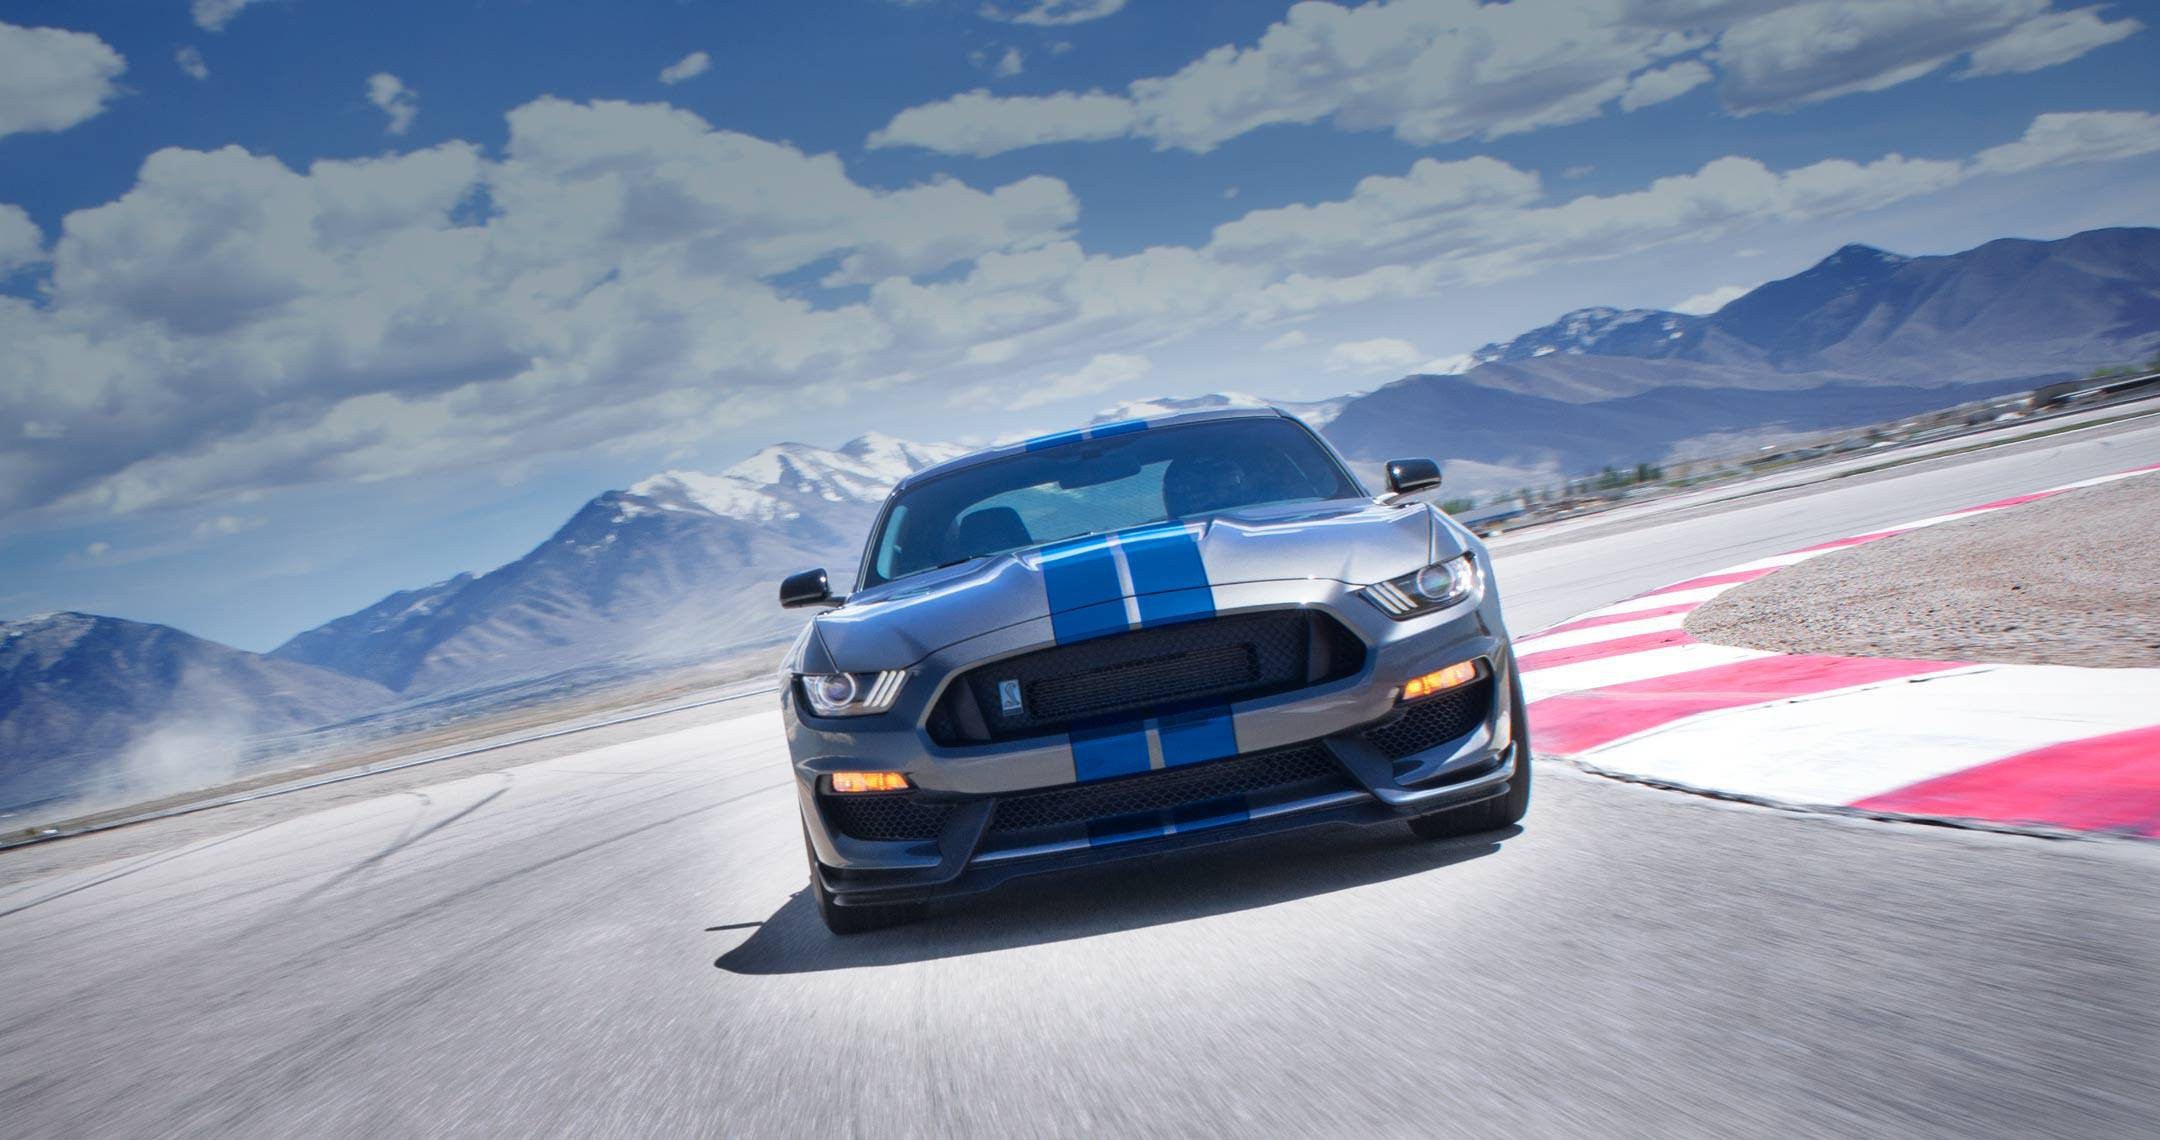 2160x1140 - Shelby Mustang GT 350 Wallpapers 33